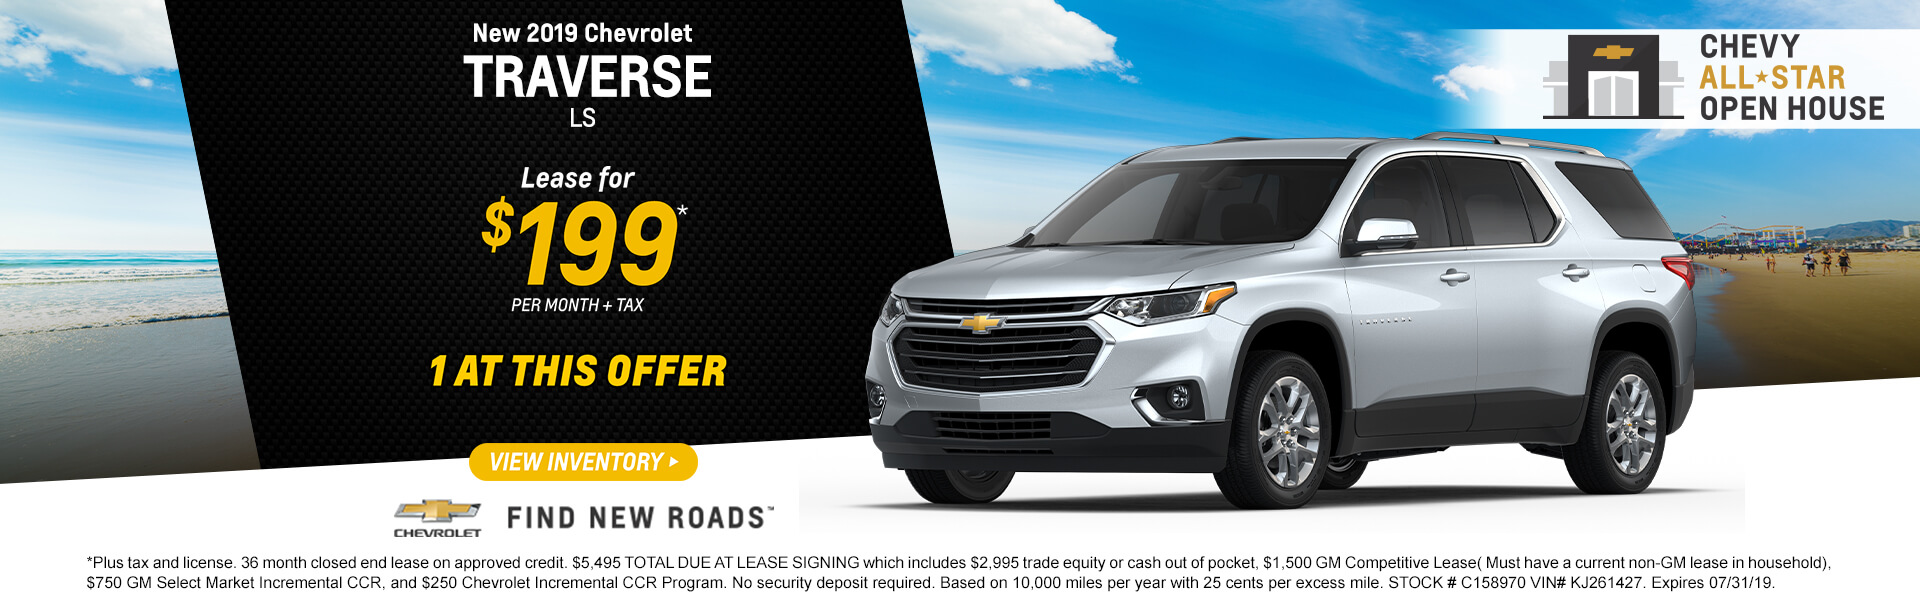 2019 Traverse  Lease